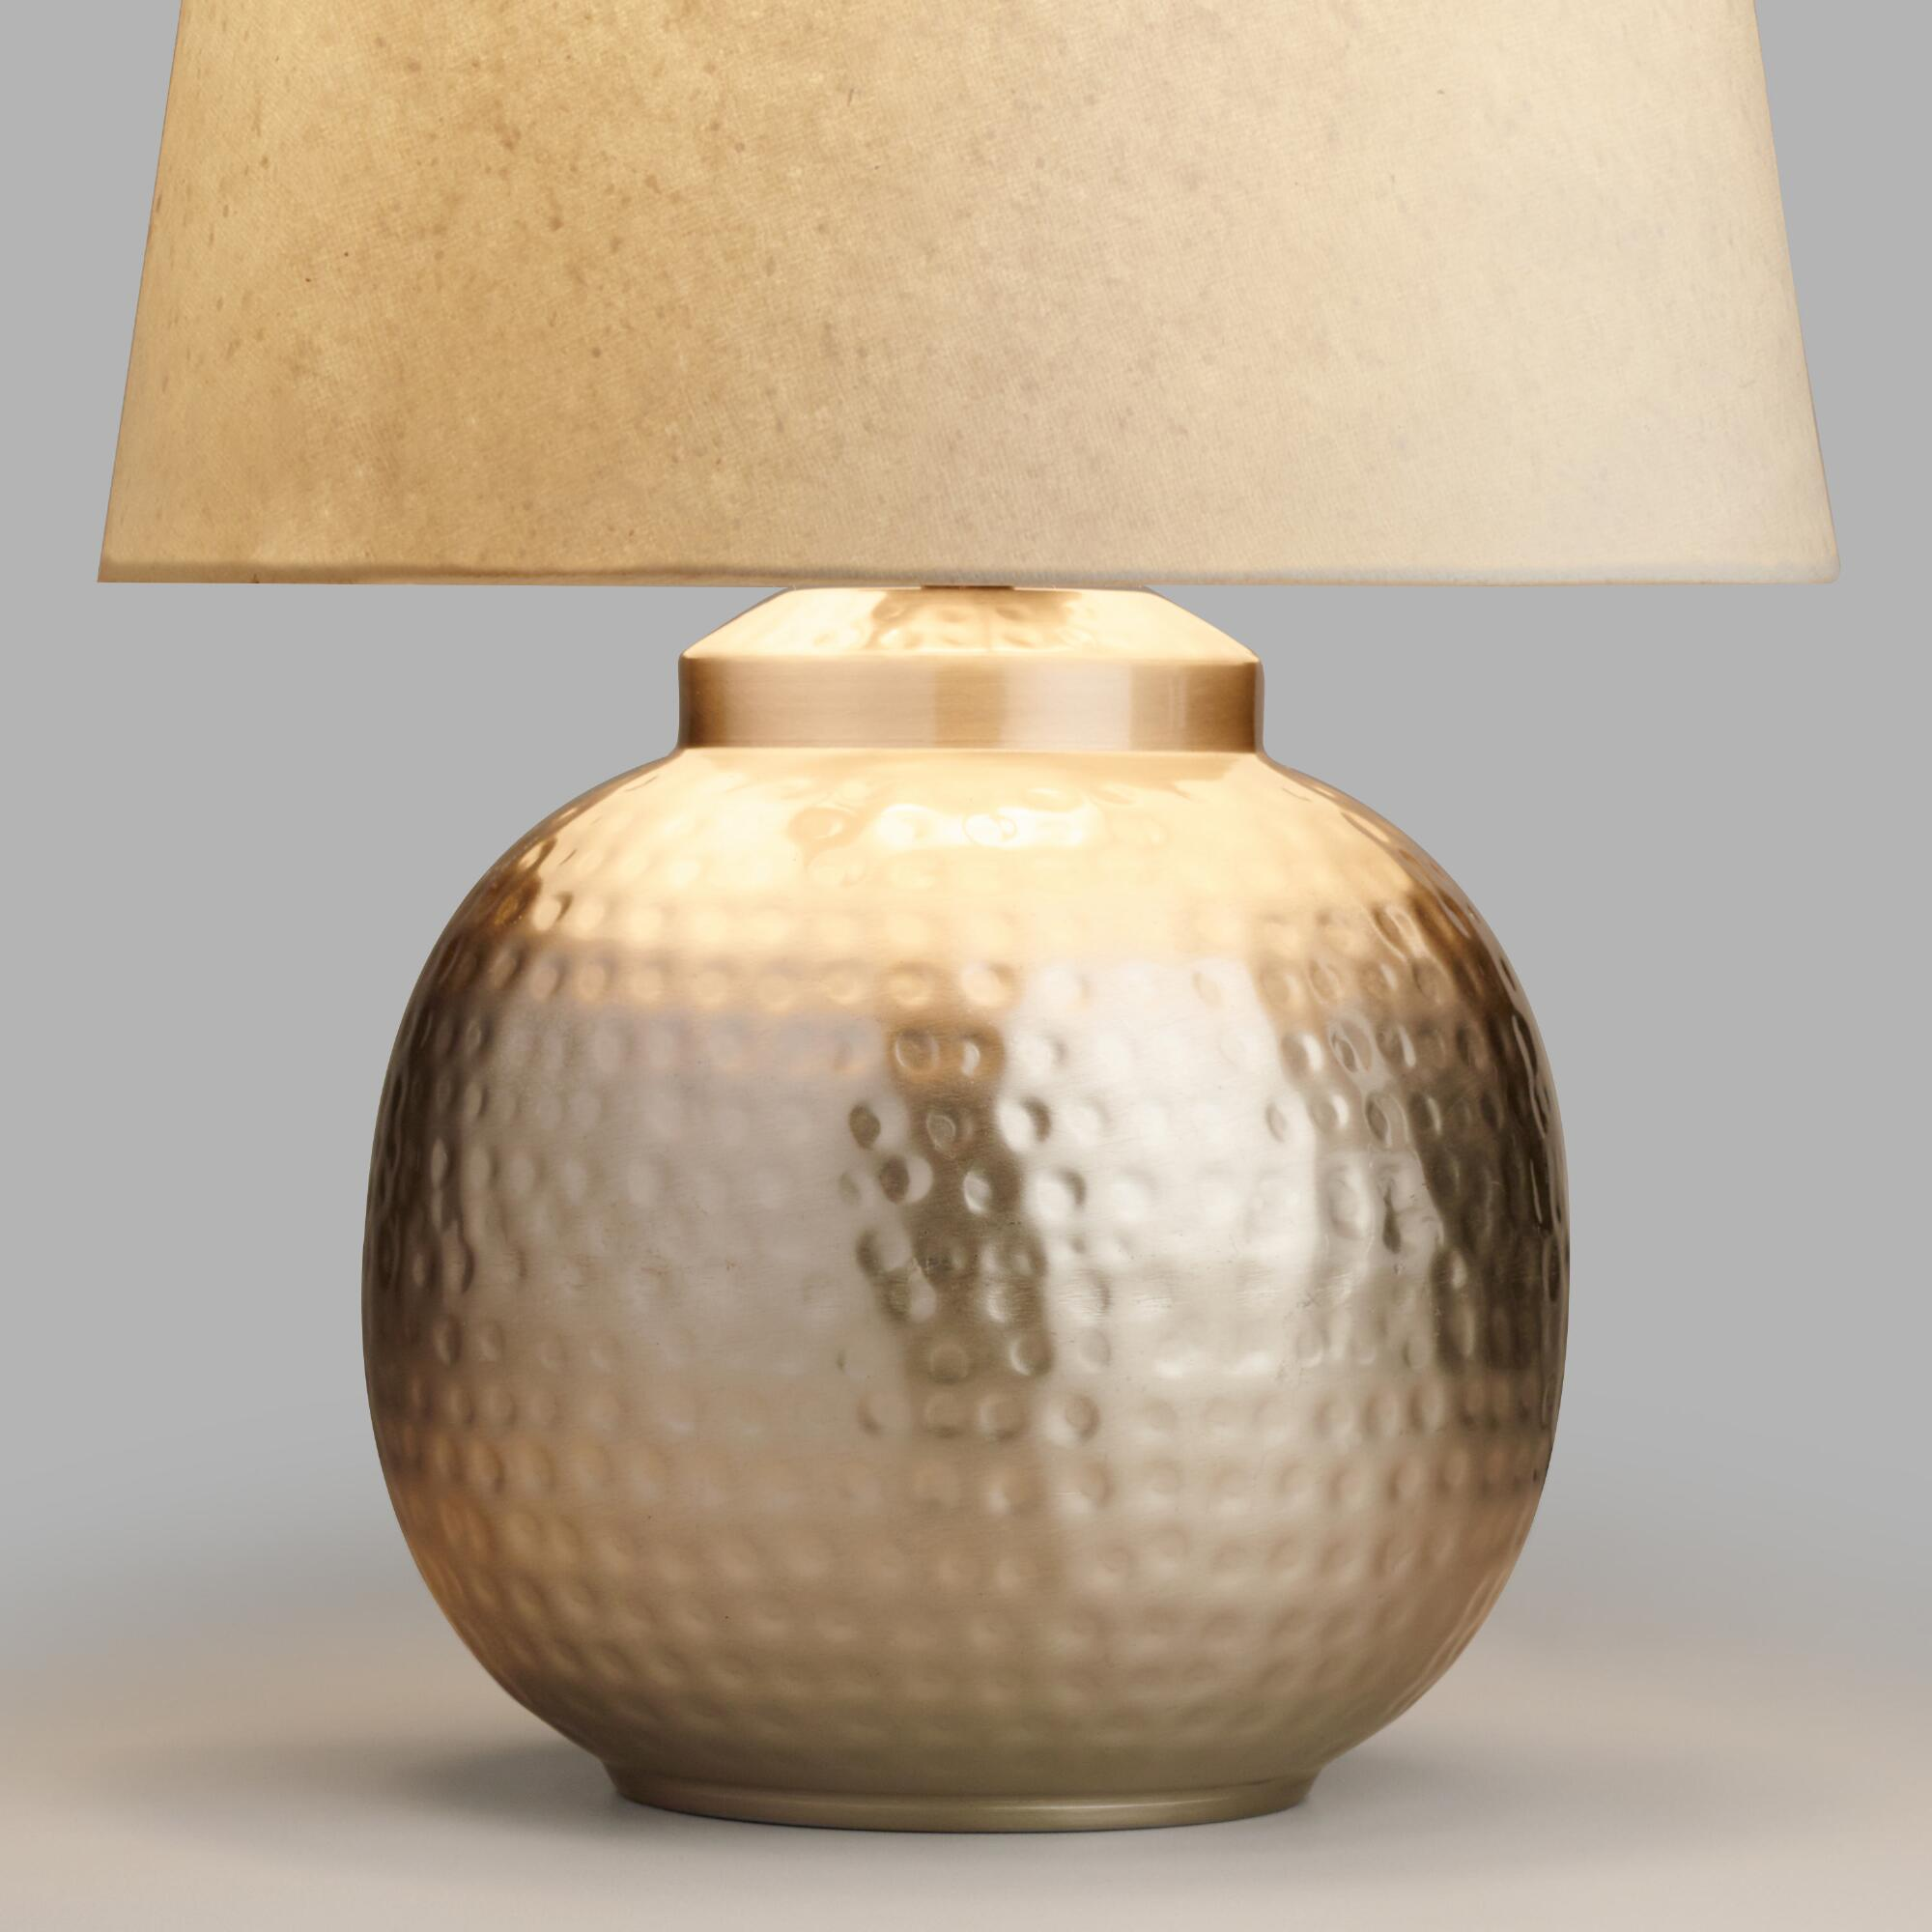 Accent lamps lamp shades base world market hammered pewter accent lamp base geotapseo Image collections